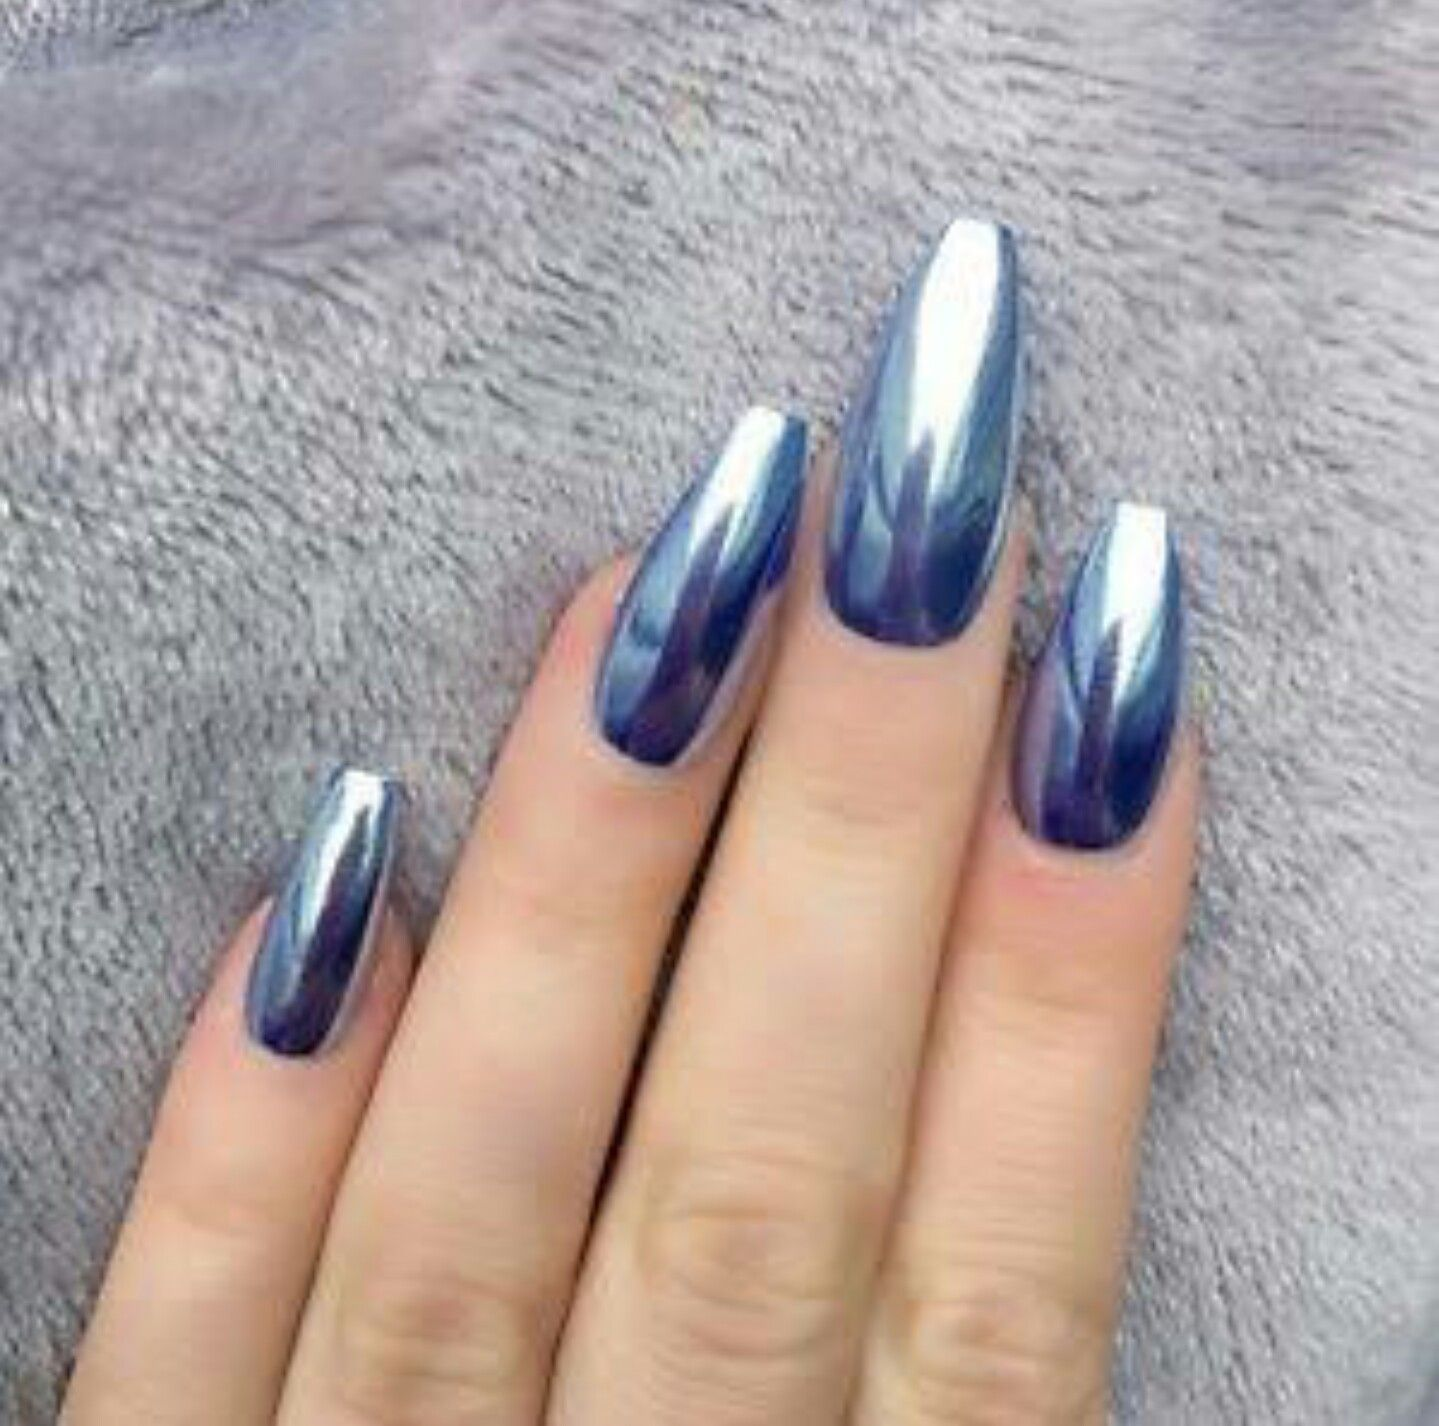 Pin by All About Posh - Events on Nail Glam | Pinterest | Chrome ...